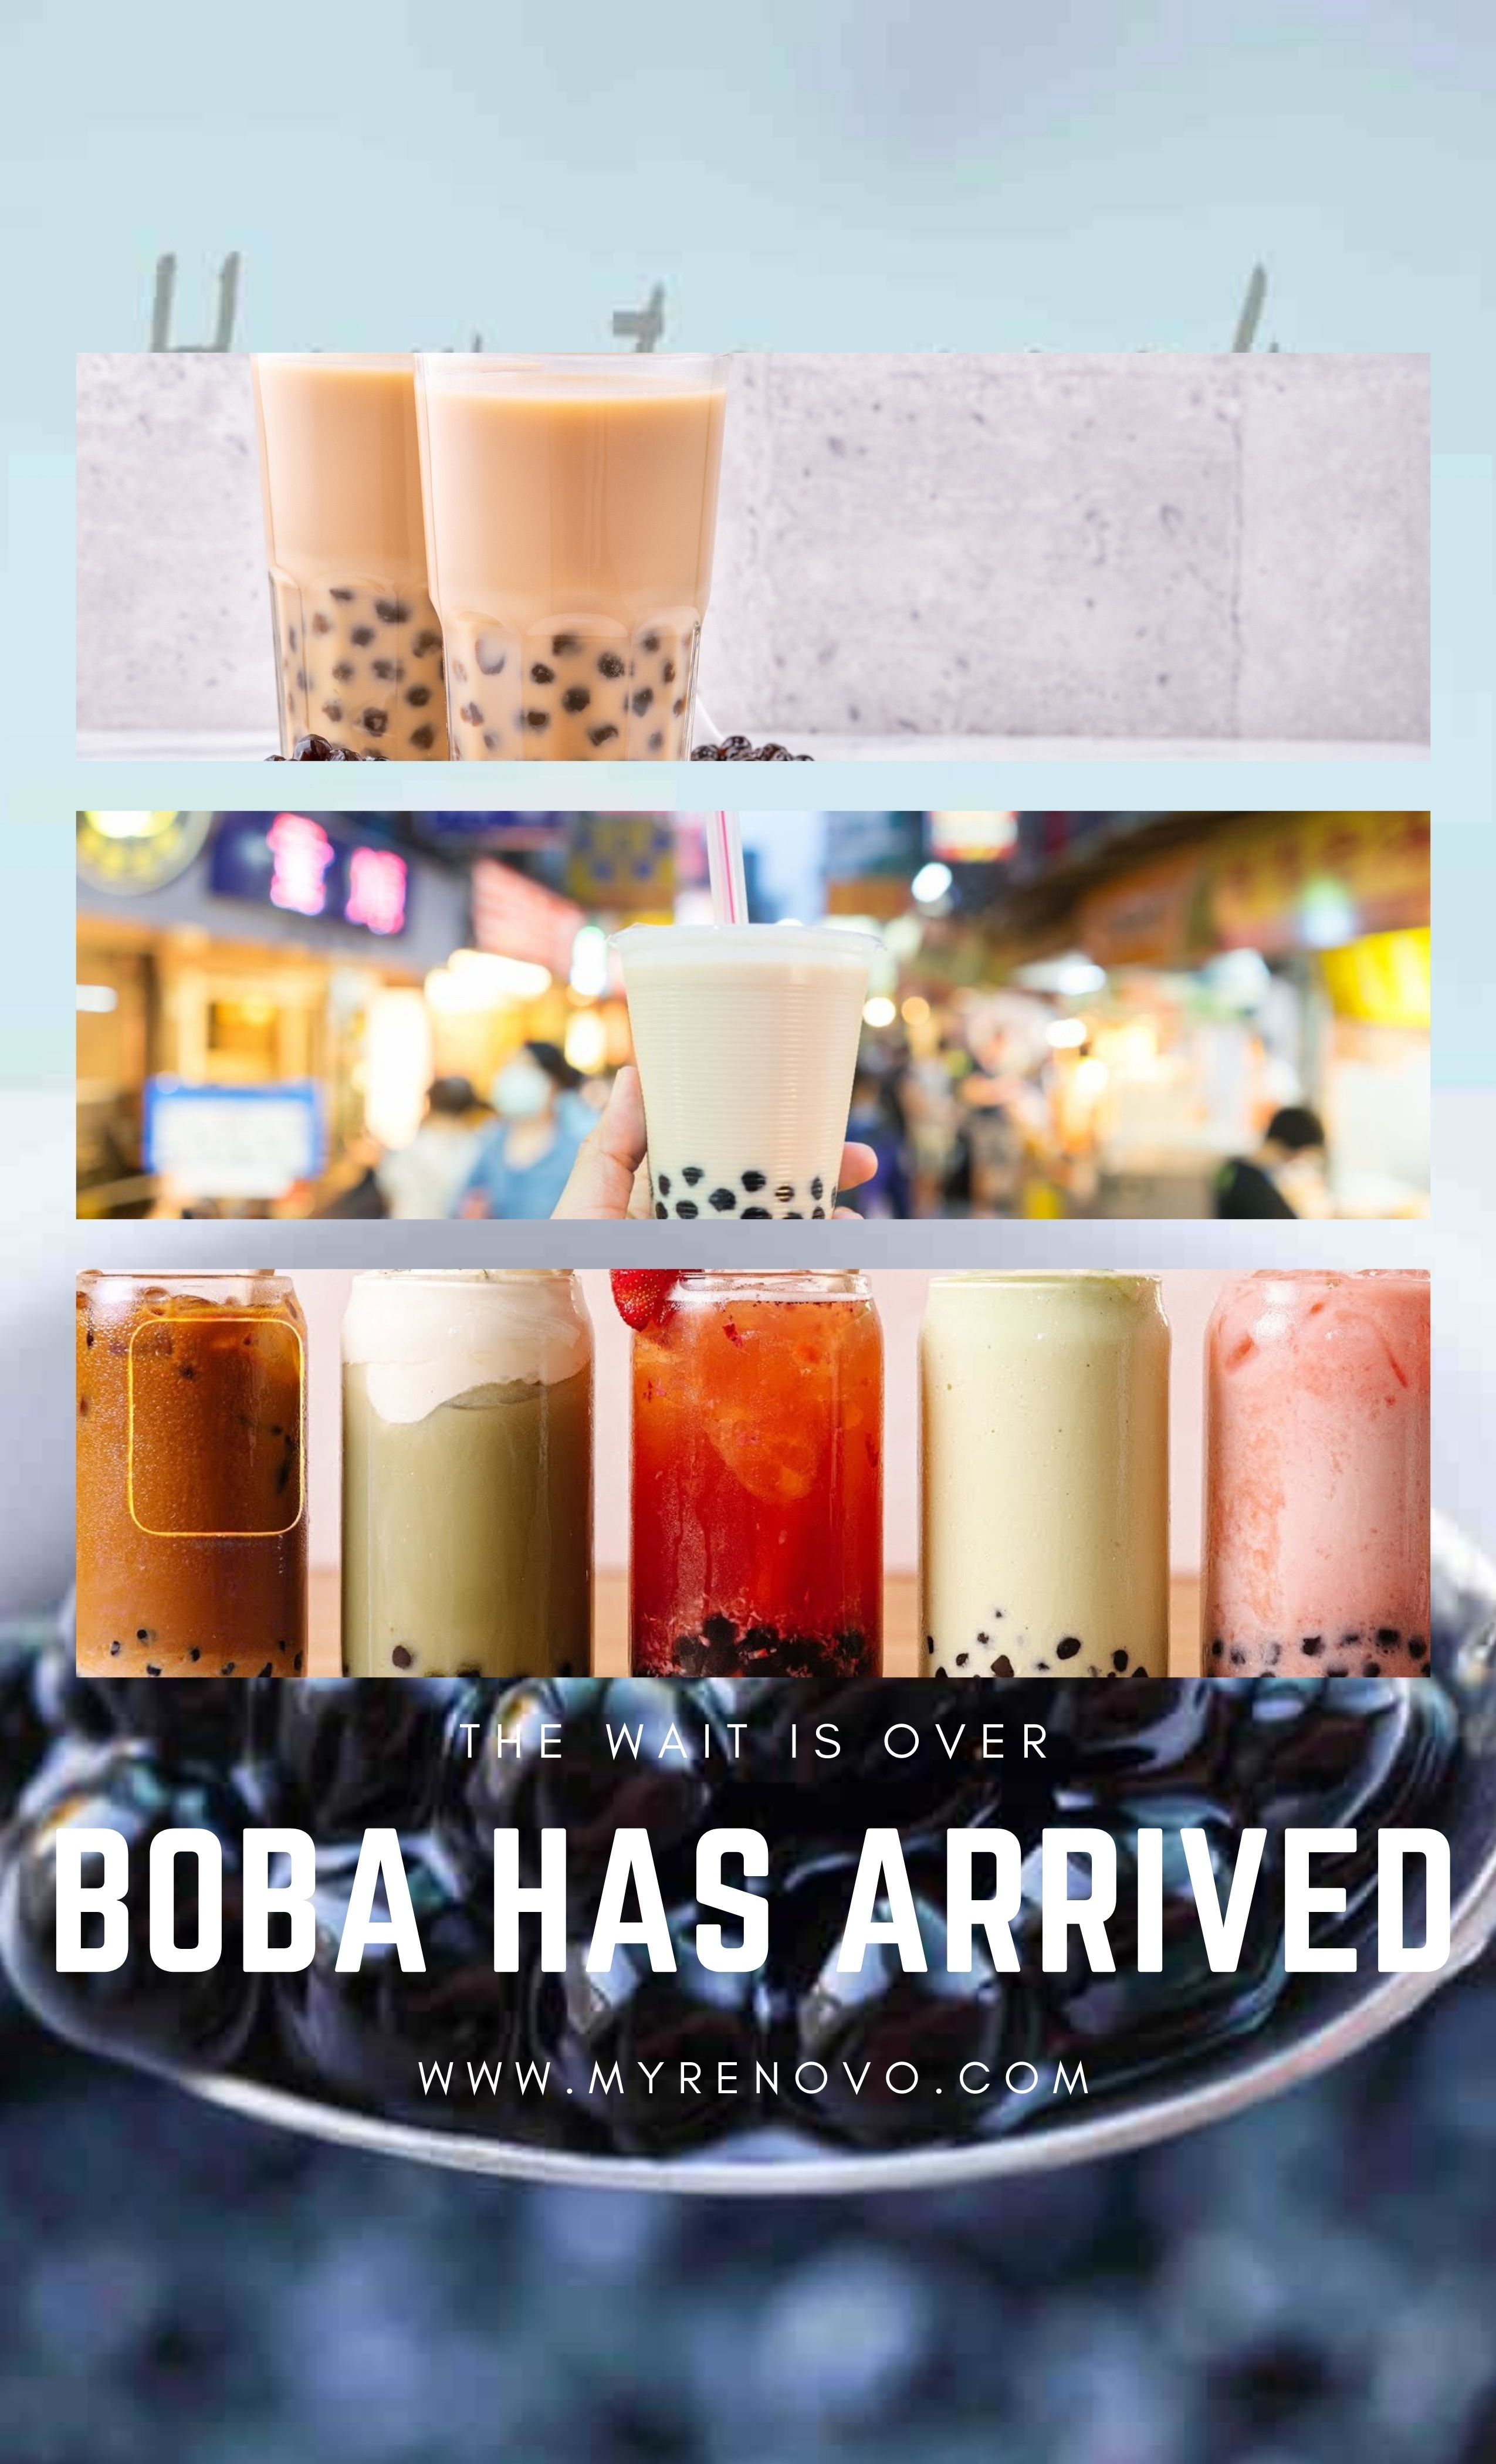 Copy of Boba poster 3 fire